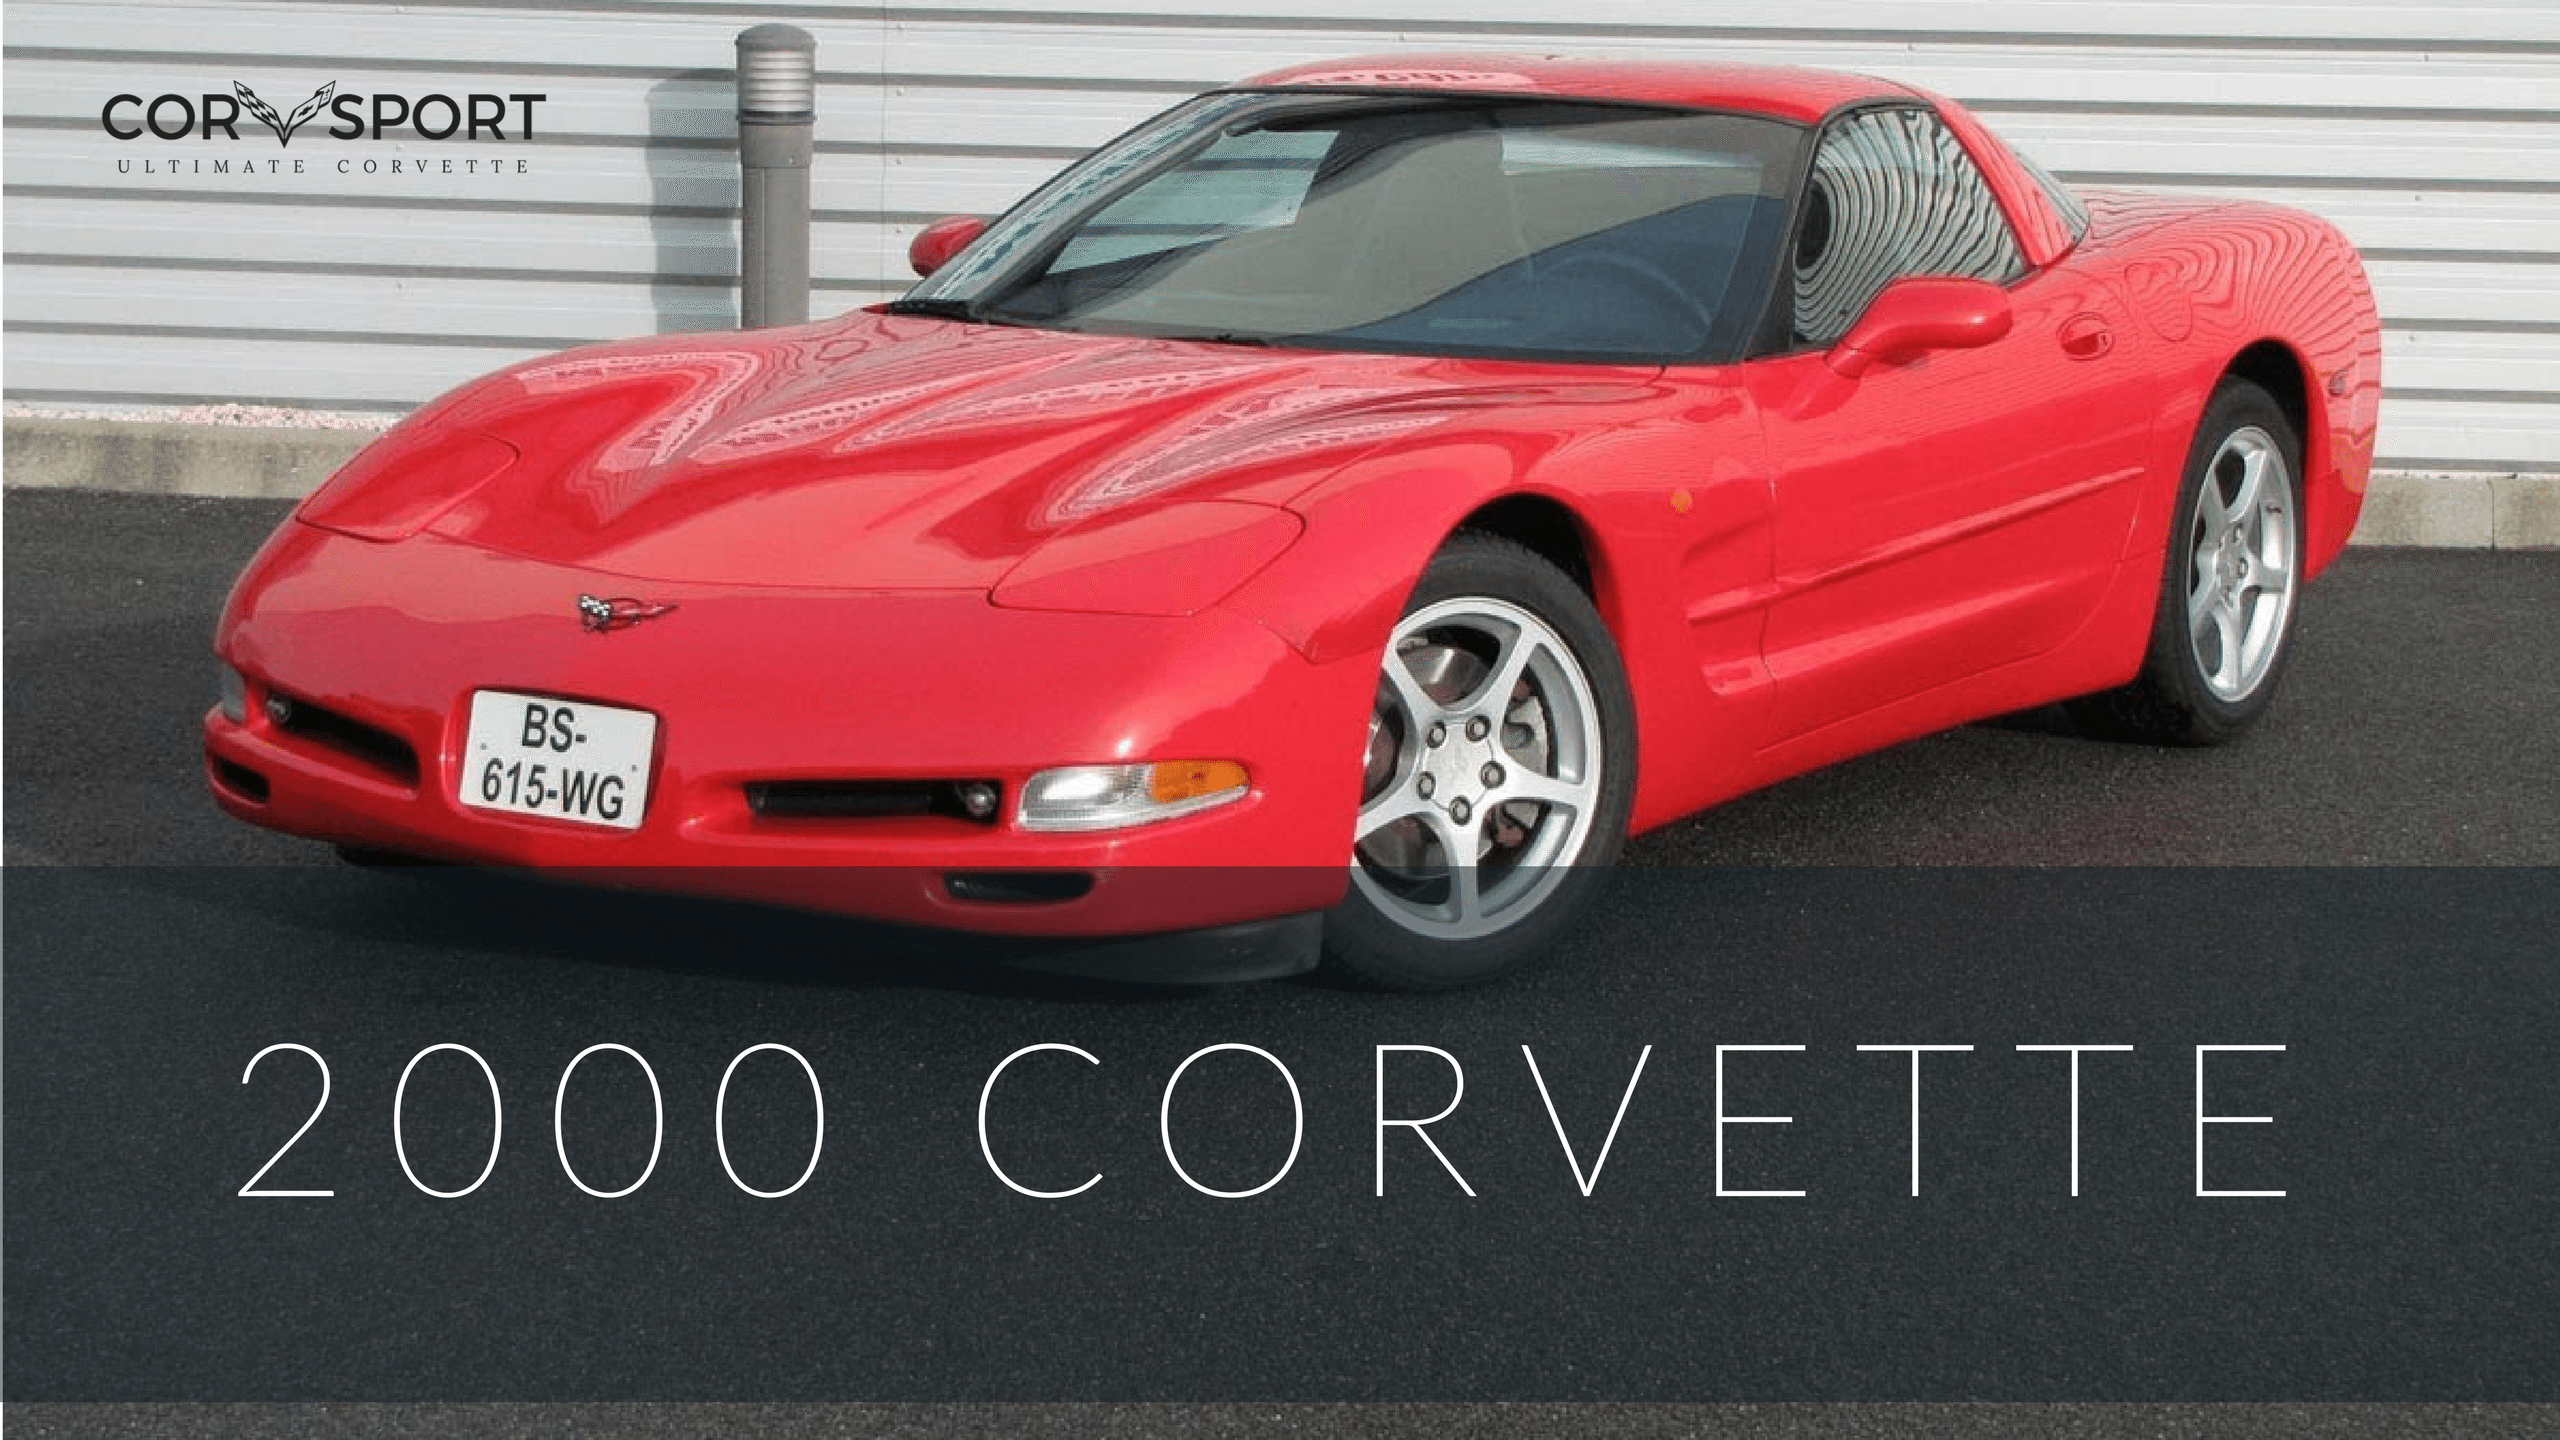 2000 C5 Corvette Ultimate Guide Overview Specs Vin Info 5 Speed Overdrive Circuit Wiring Diagram For 1955 Chevrolet Passenger Car Article